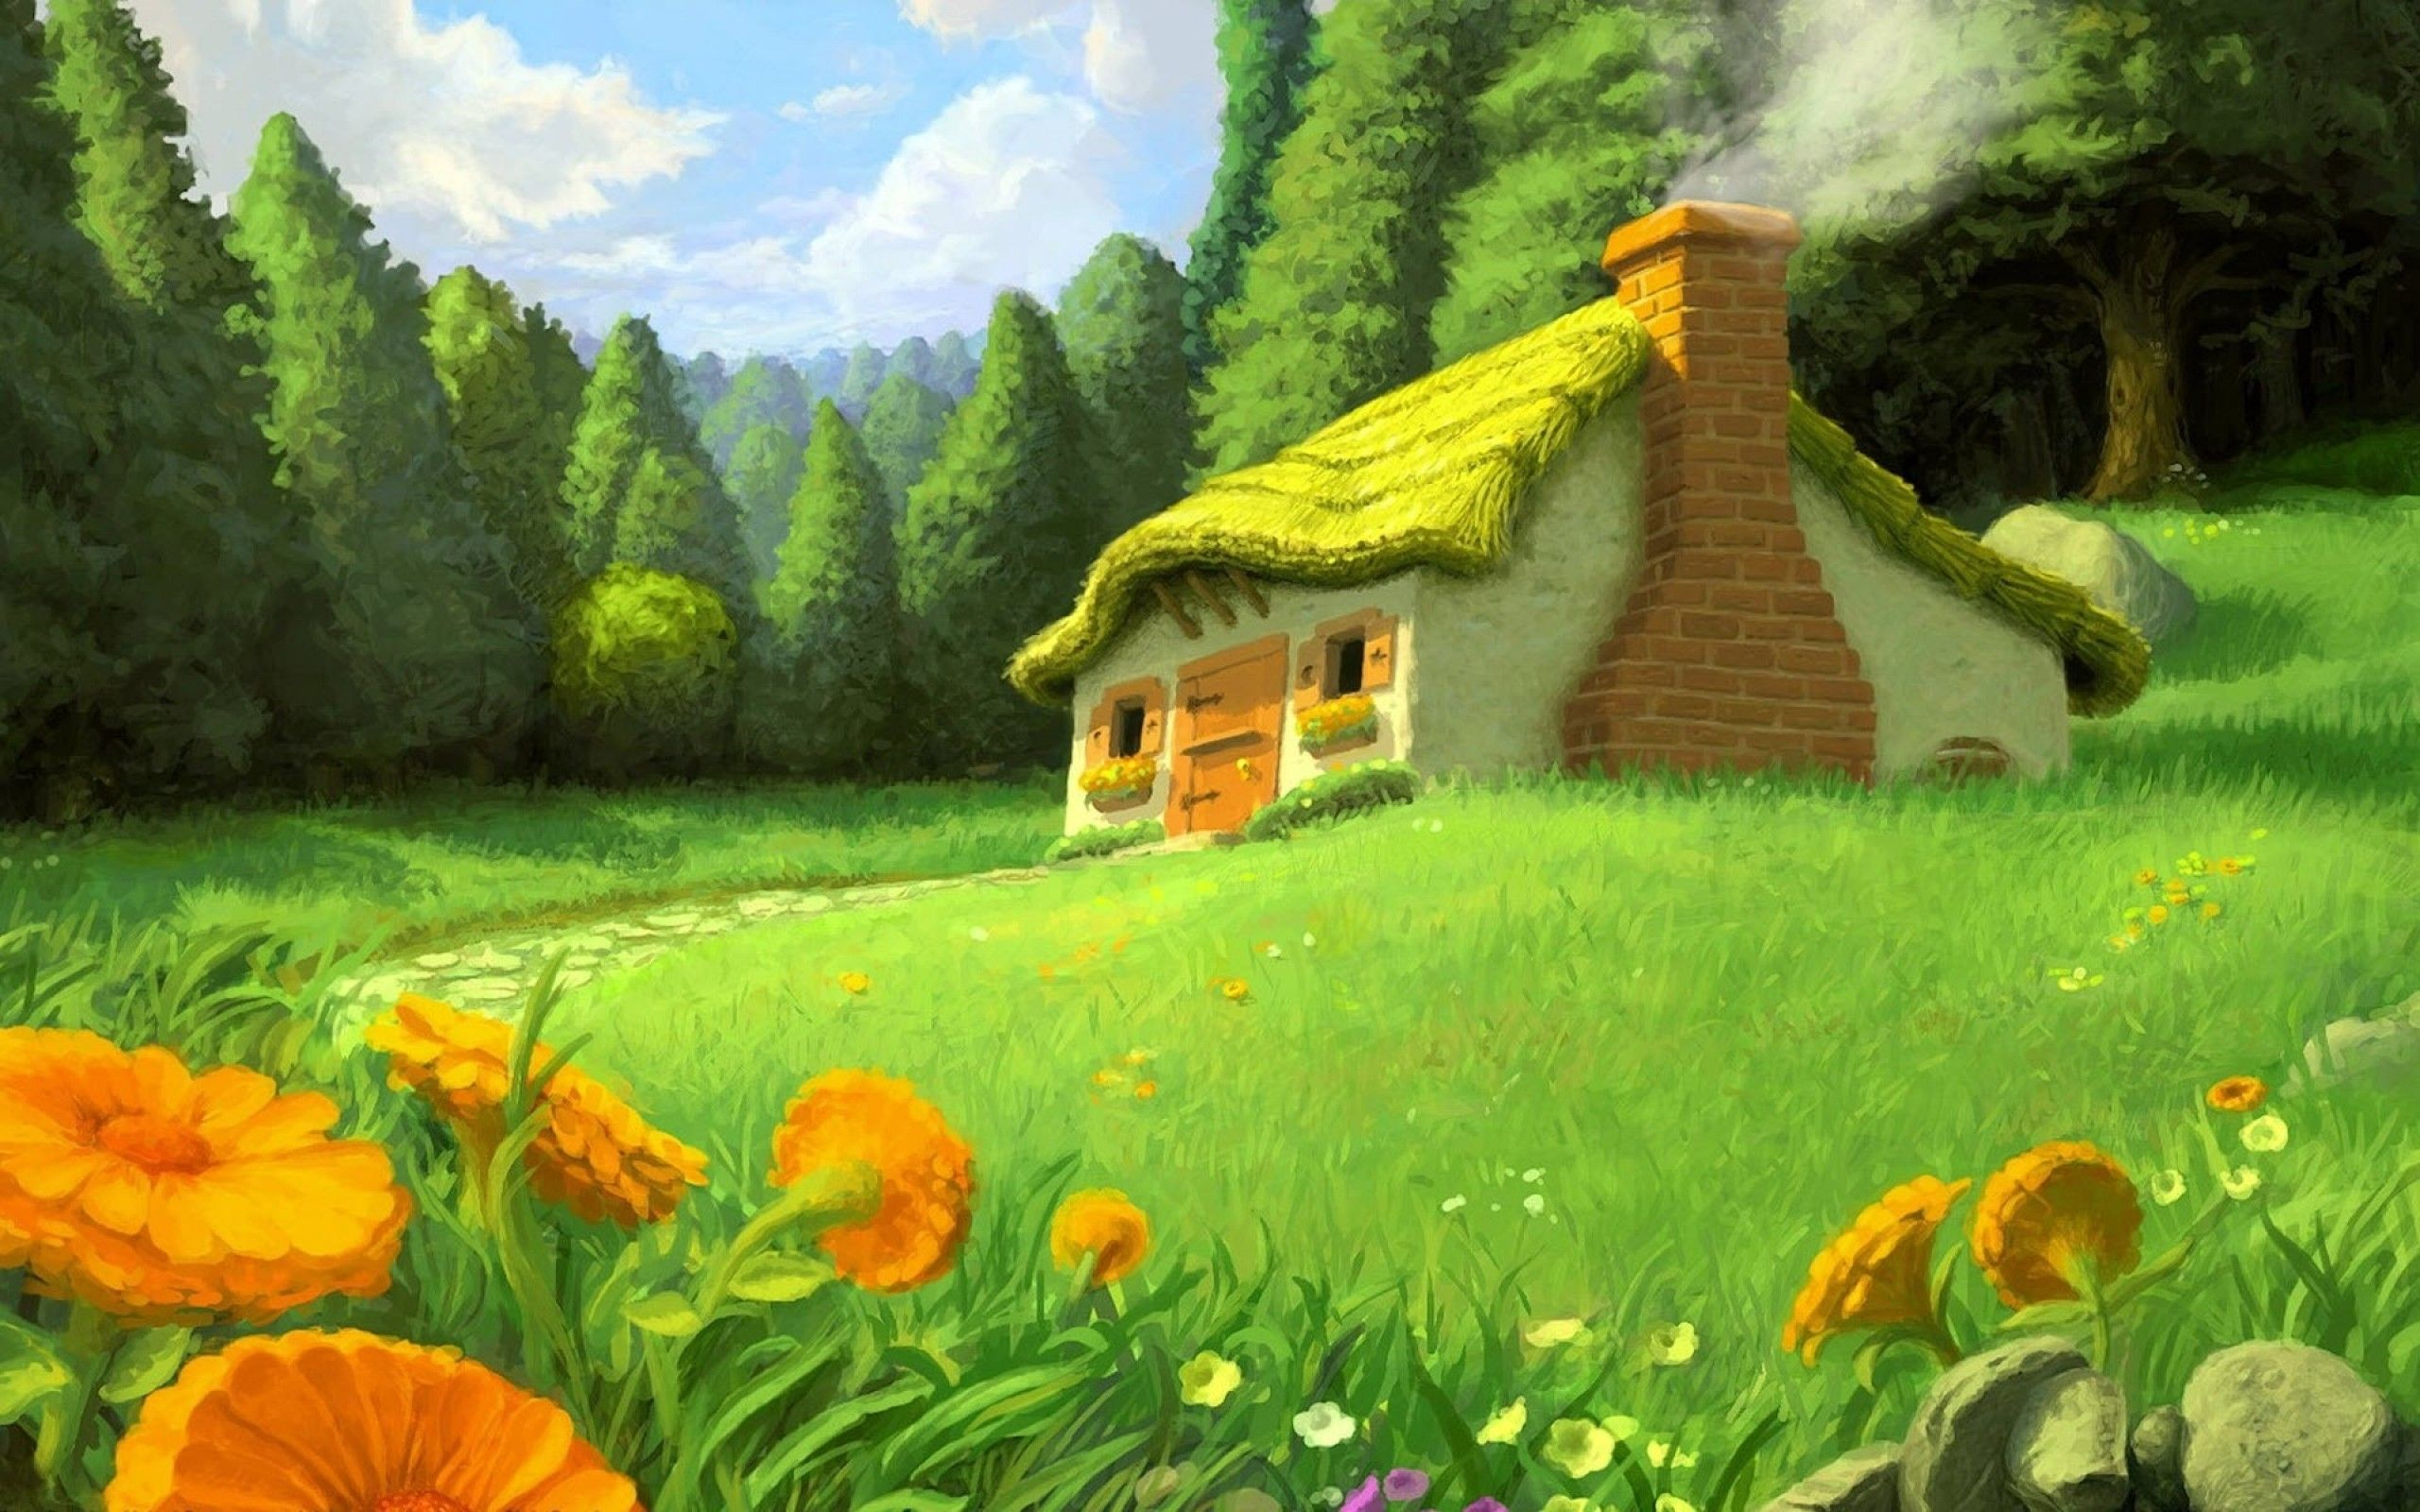 Beautiful Nature Drawing The House From The Story Drawings Paintings Sketches Design Artwork Wall Scenery Wallpaper Landscape Wallpaper Nature Wallpaper